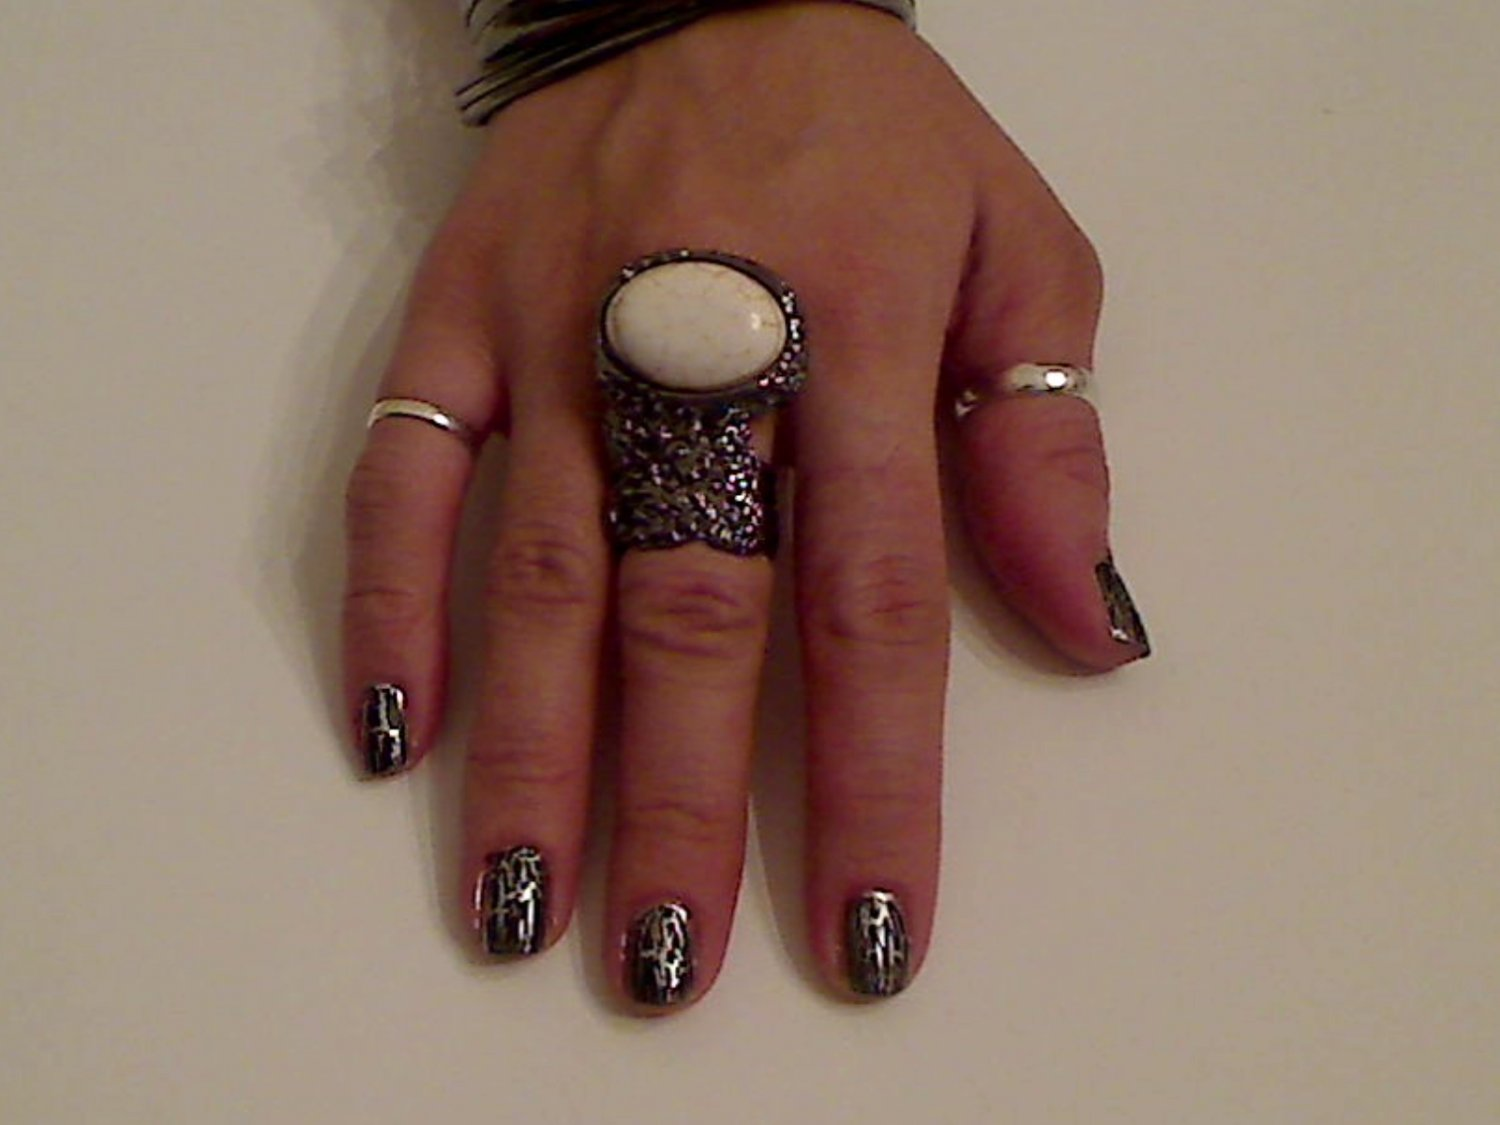 CREAM ARTY CHUNKY MOON KNUCKLE RING IN GUN METAL SIZES *6*7*8*9